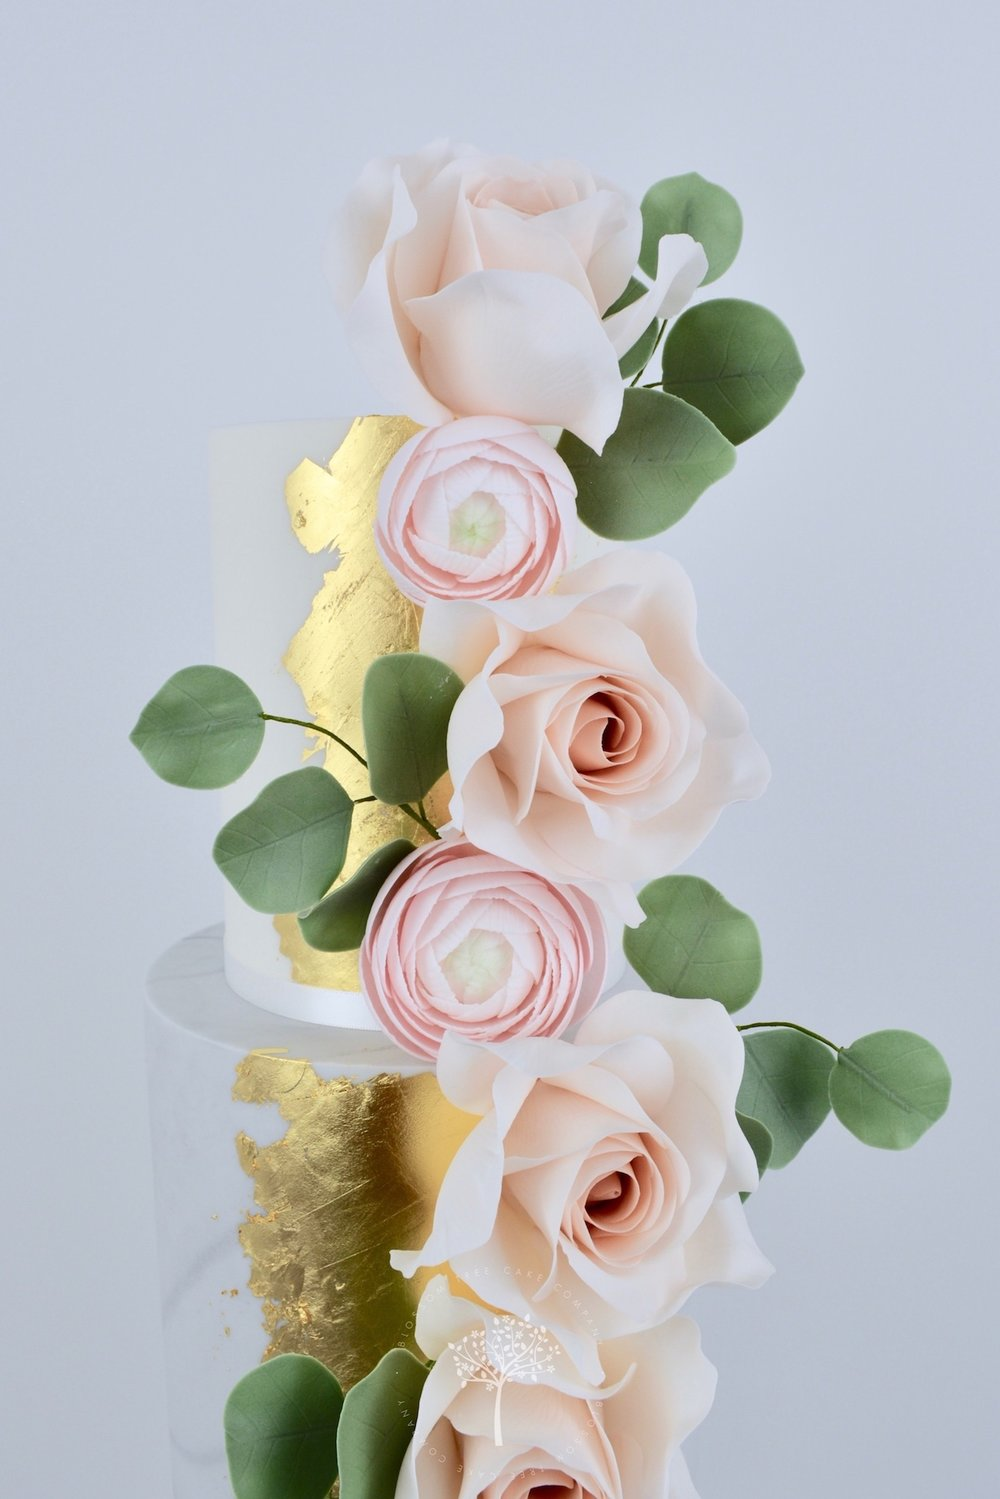 Rose Gold and Ranunculus wedding cake by Blossom Tree Cake Company Harrogate North Yorkshire - top sugar flowers.jpg